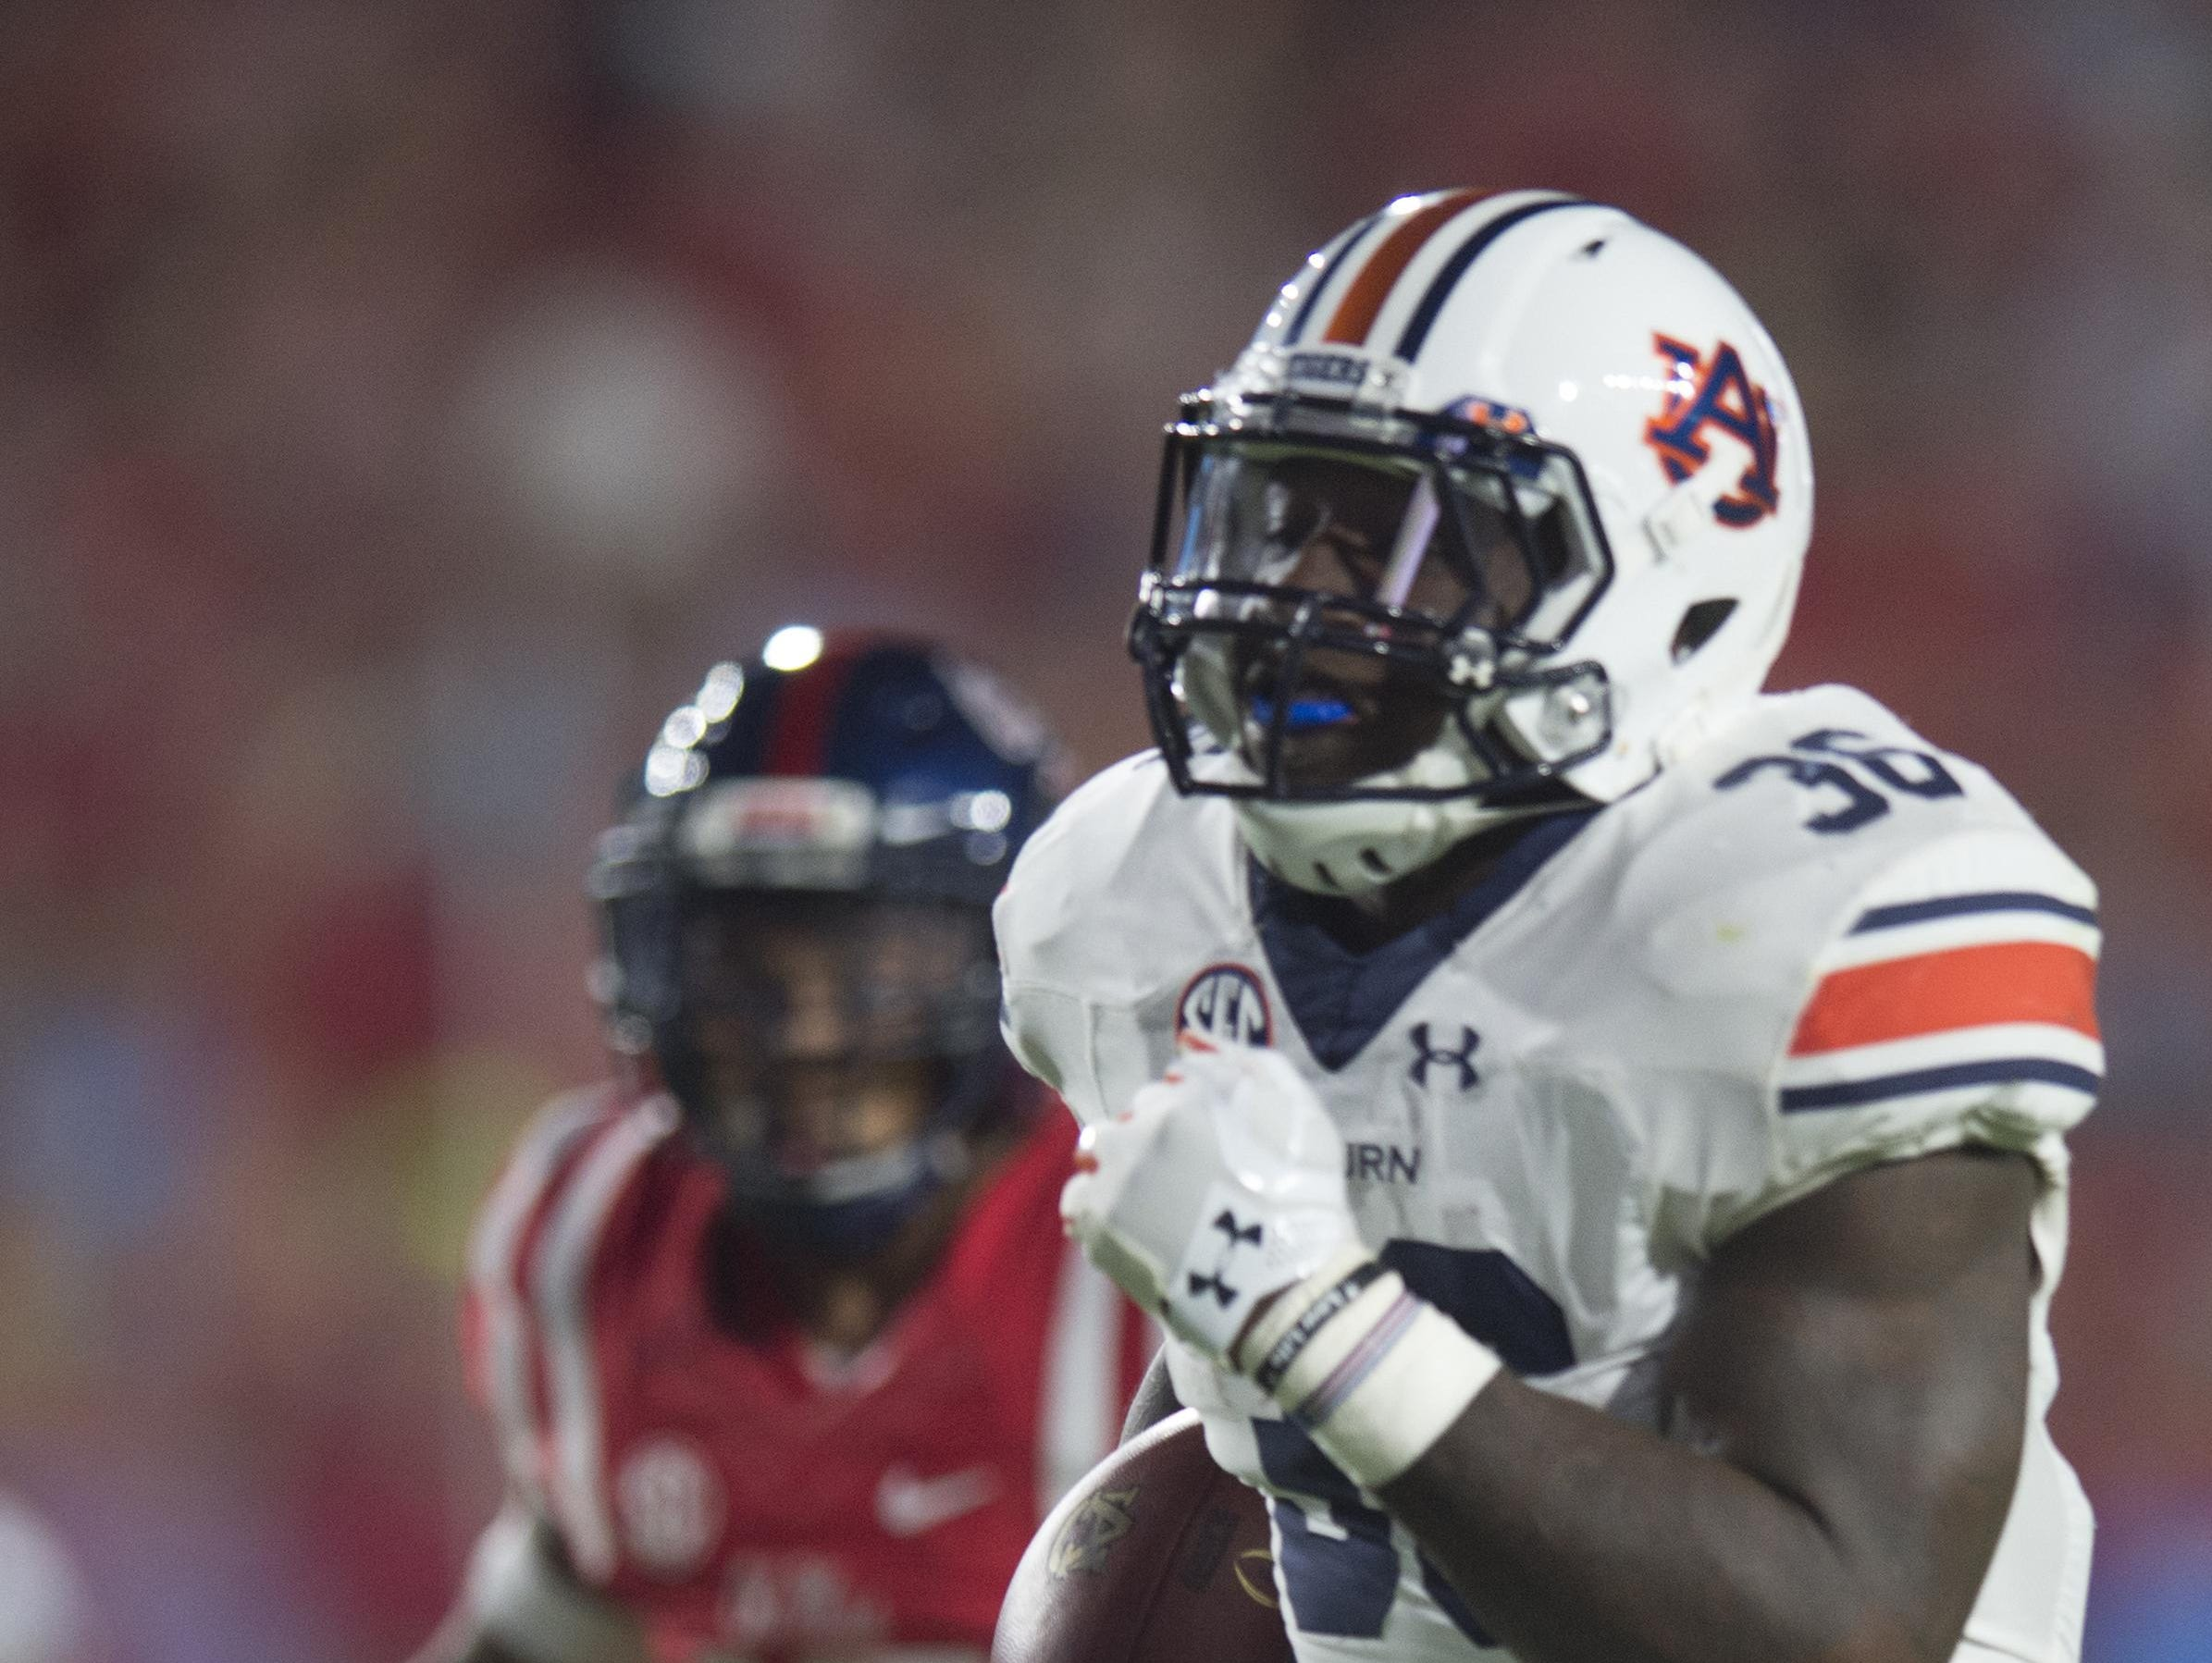 Auburn running backs coach Tim Horton has coached Heisman Trophy finalists at tailback but Kamryn Pettway is his first husband and father.